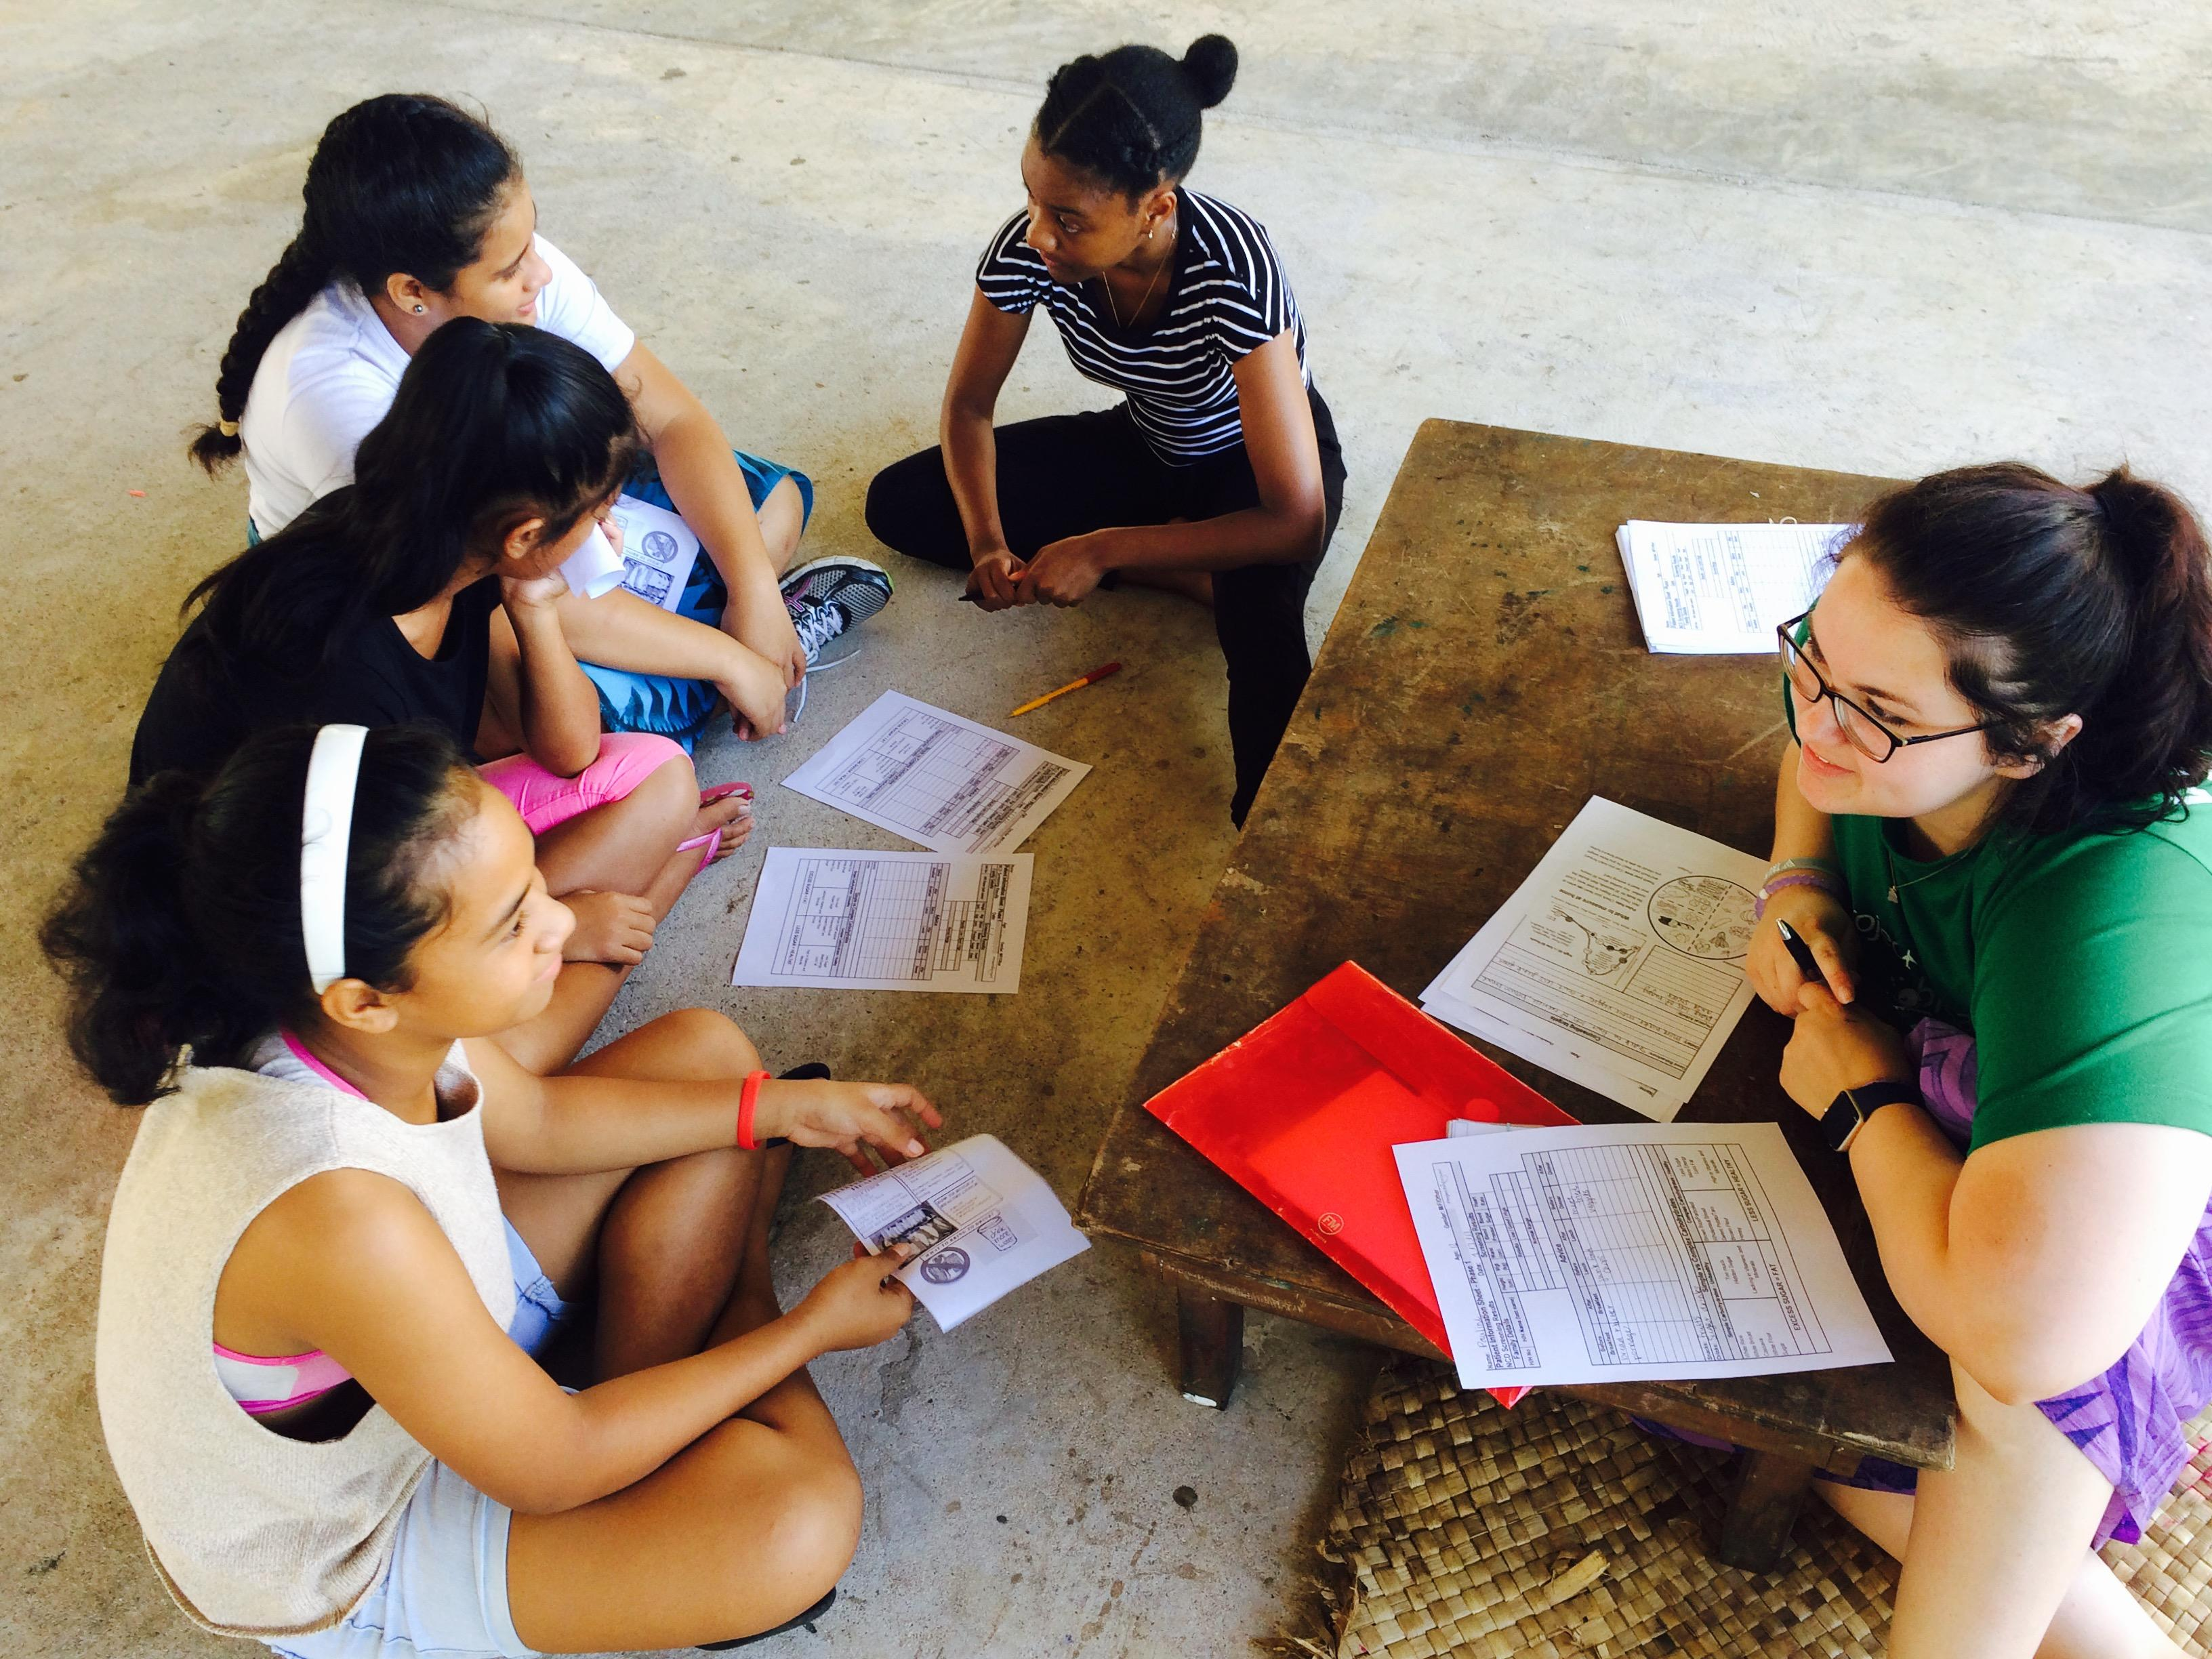 A group of students travel to do outreach work during their Nutrition internship in Samoa.